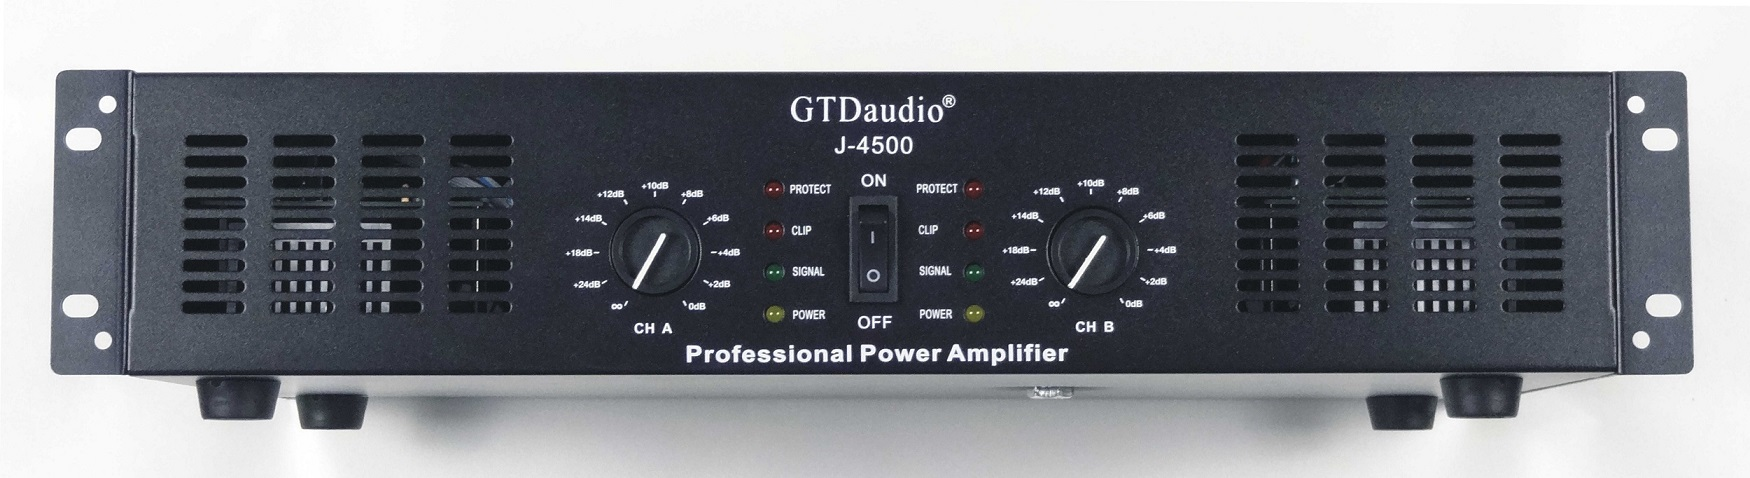 gtd audio 2x250 watts professional stereo power amplifier j  watts professional power amplifier amp